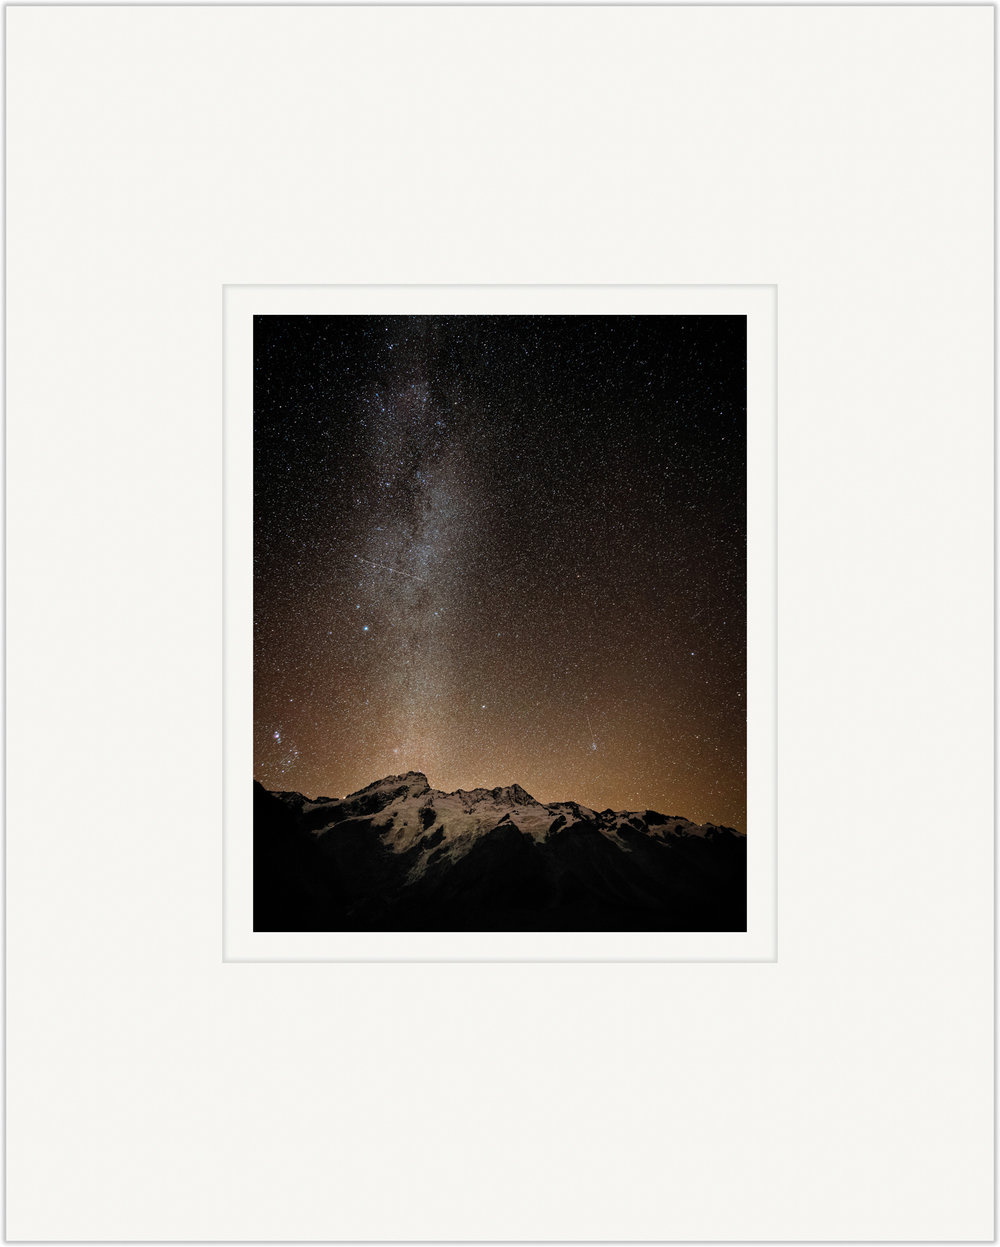 Droplets Upon Mt. Sefton   20cm x 25cm Photo Paper Limited Edition of 99   IDR 399,000